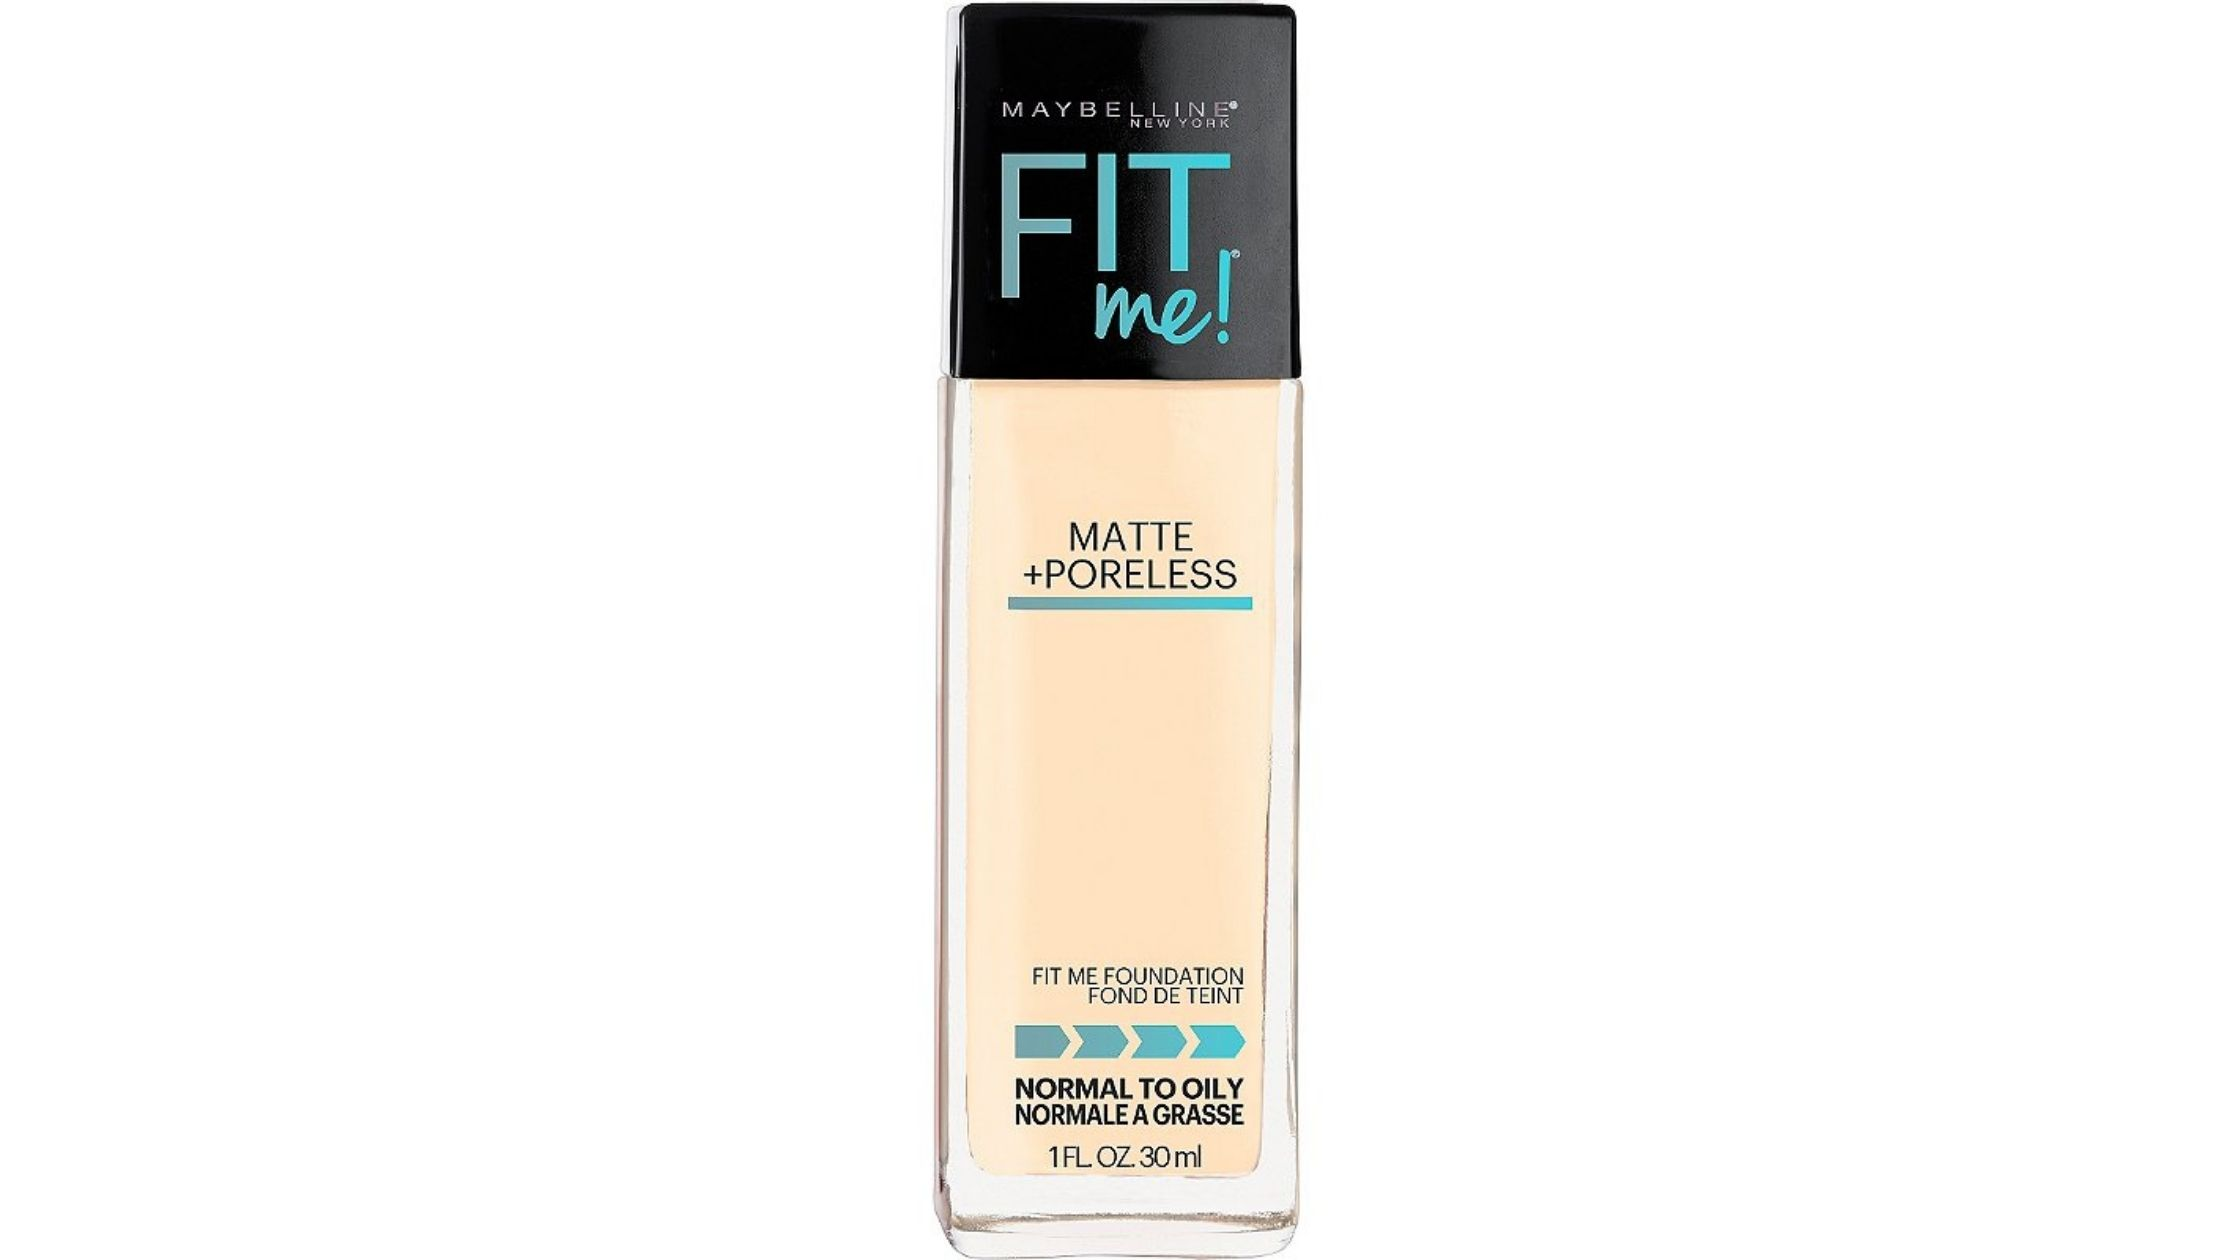 Fit Me! Matte and Poreless Foundation